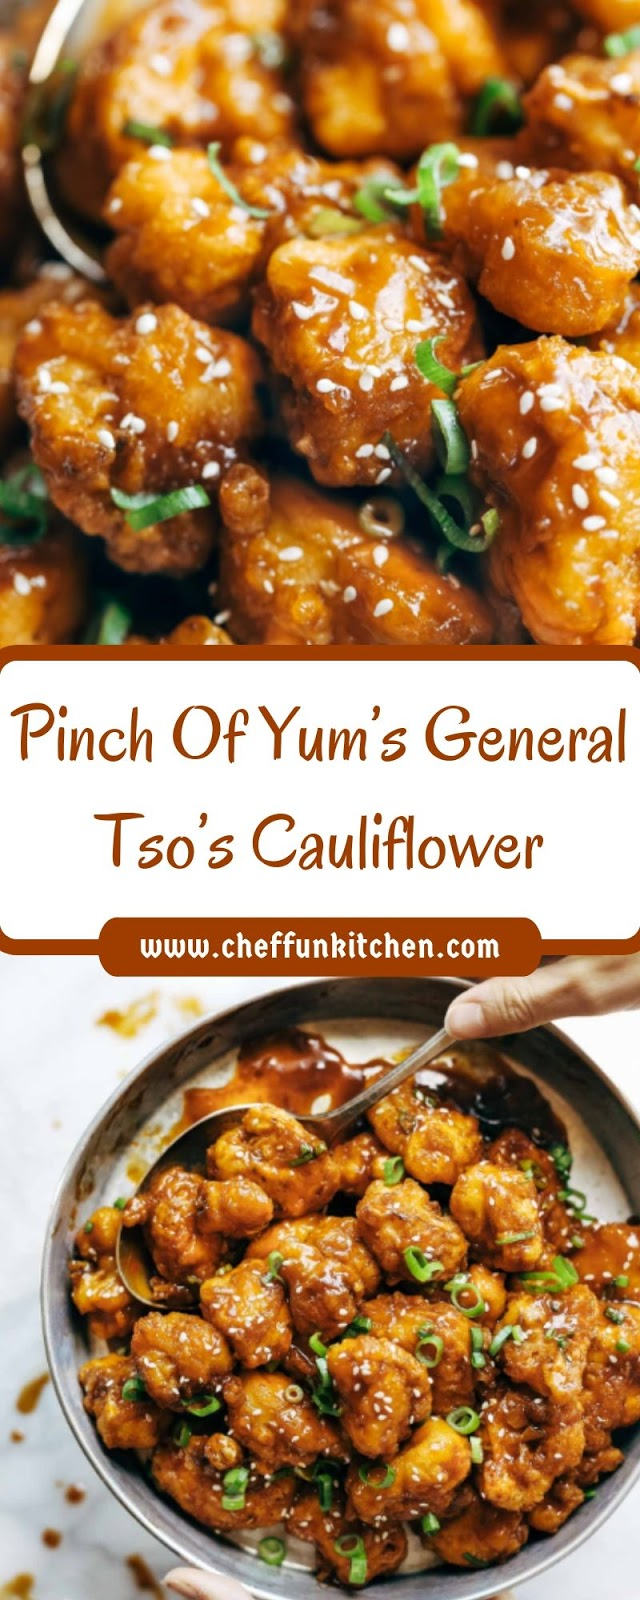 Pinch Of Yum's General Tso's Cauliflower